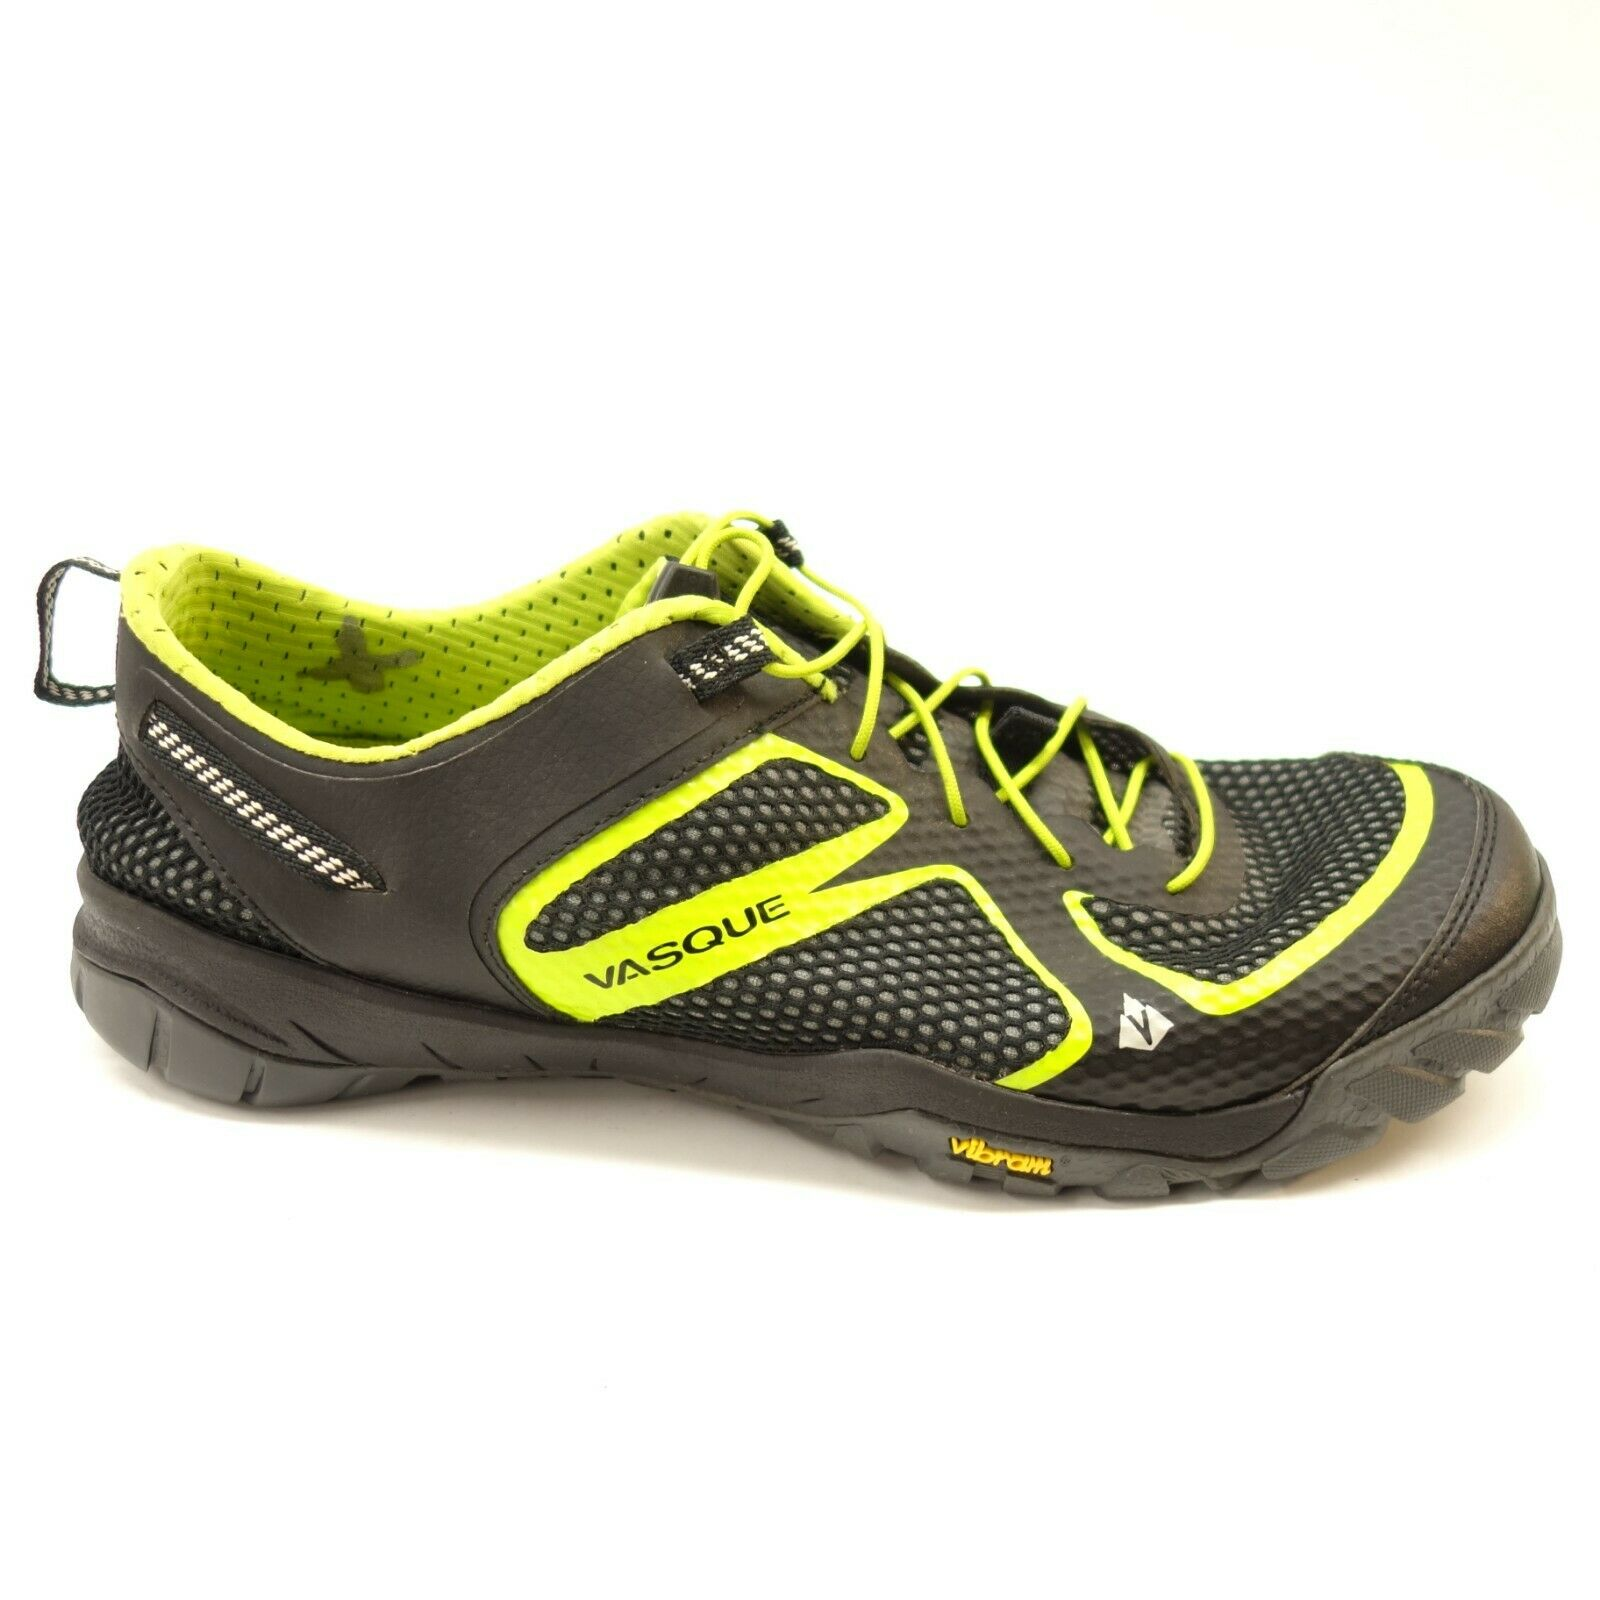 Vasque Mens Lotic Black Lime Athletic Trail Vibram Running shoes Size 11.5